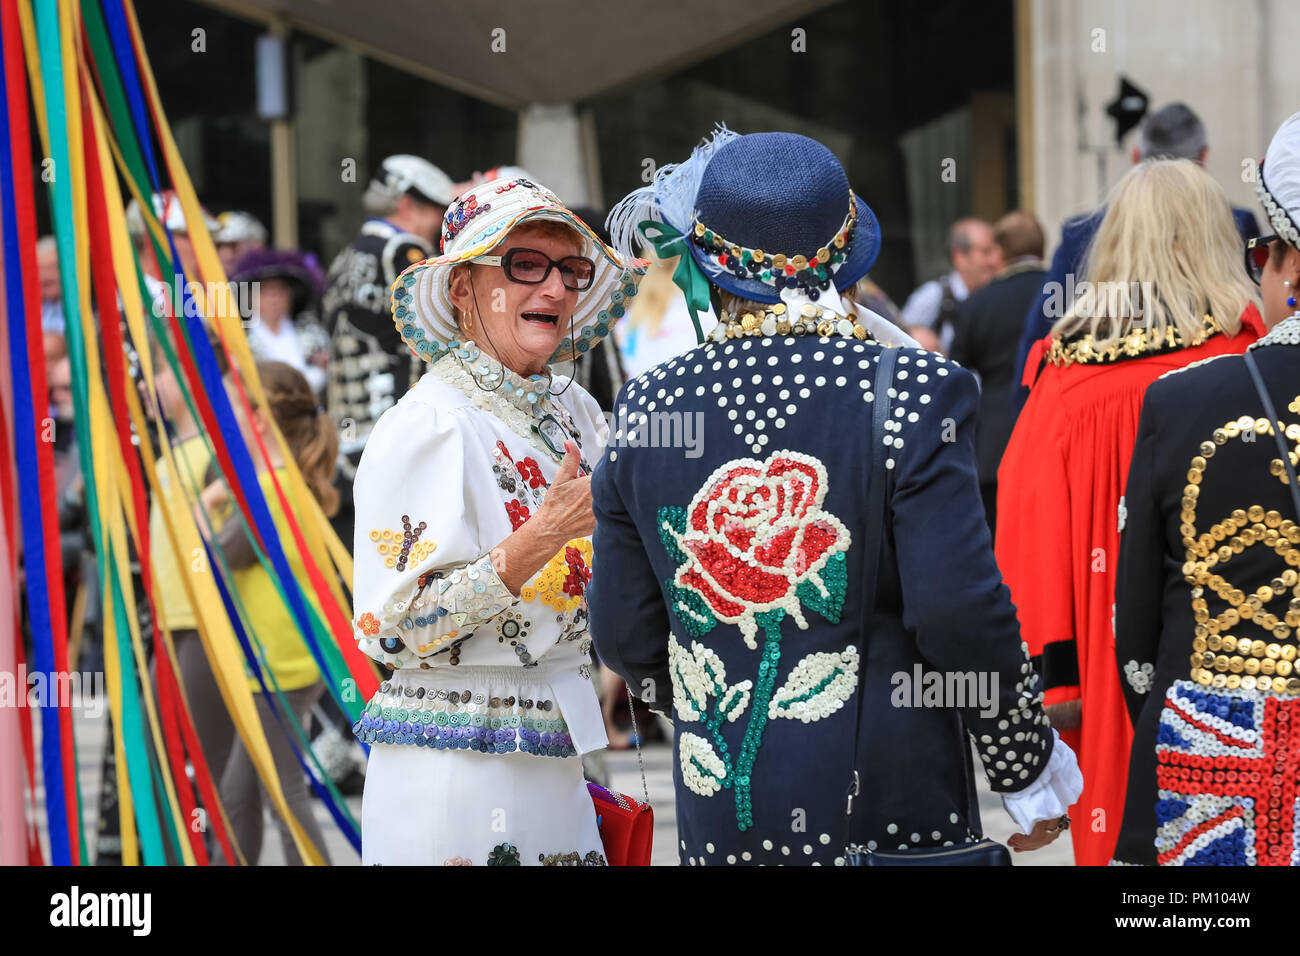 Guildhall Yard, London, UK, 16th Sep 2018. The 20th anniversary of the annual Pearly Kings and Queens Harvest Festival sees the pearlies in their traditional pearl button covered suits and dresses celebrating with Morris dancing, maypole dancing, the Mayors of London and marching bands at Guildhall Yard, before parading through the City of London to St Mary Le Bow Church for a service of thanksgiving. Credit: Imageplotter News and Sports/Alamy Live News - Stock Image